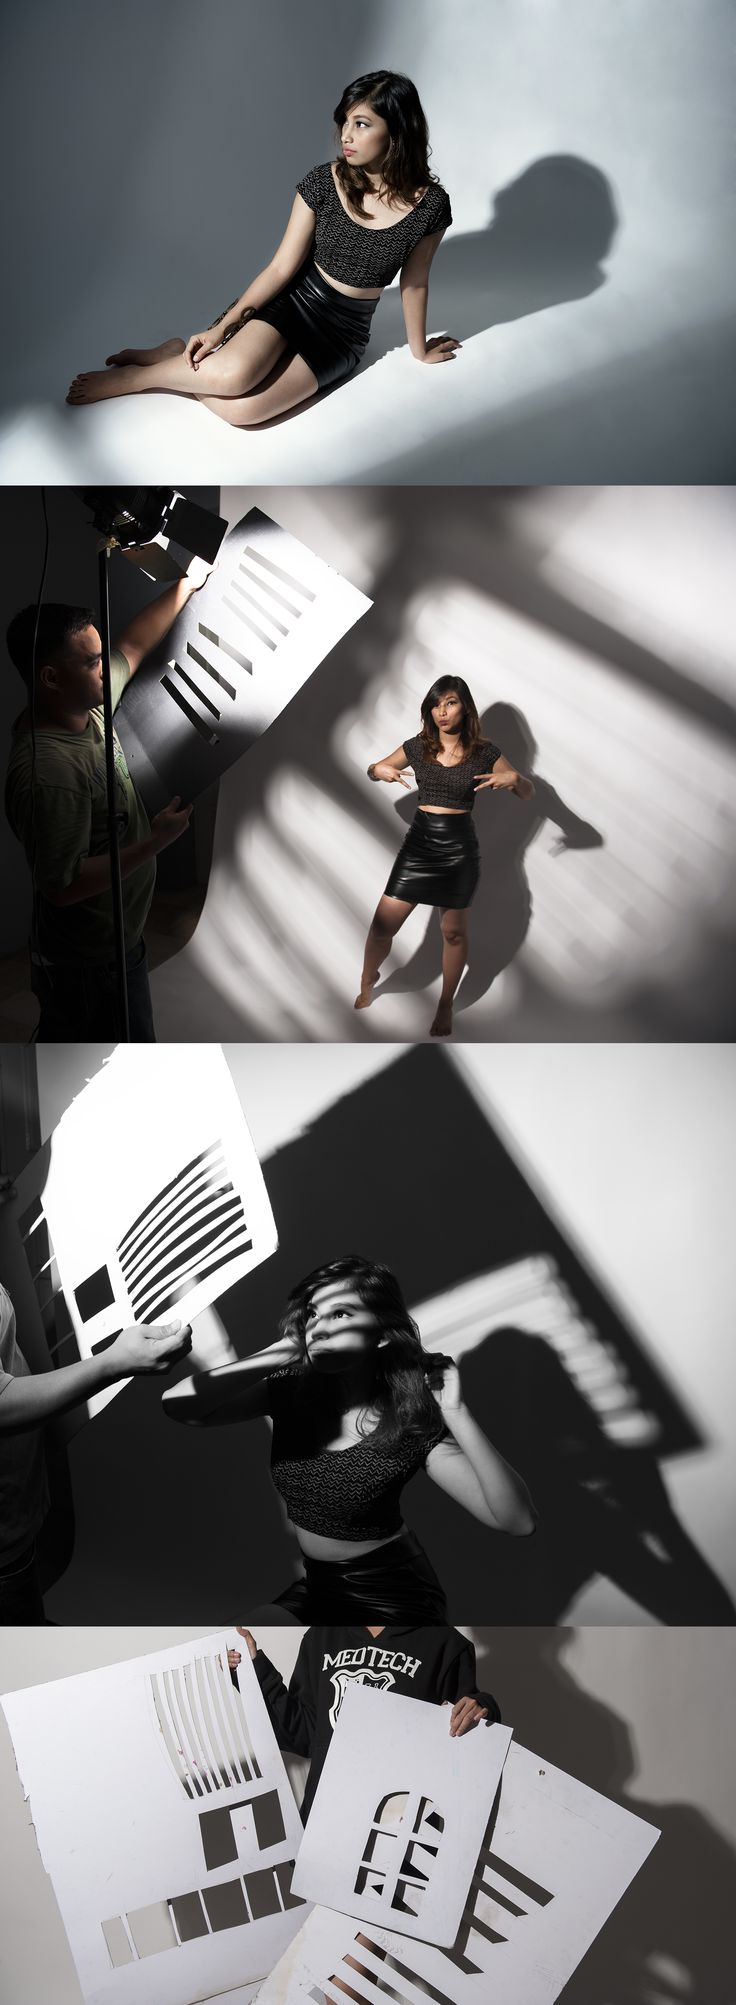 the use of gobos in your images, love the shadows they cast on the model and background. Now YOU Can Create Mind-Blowing Artistic Images With Top Secret Photography Tutorials With Step-By-Step Instructions! http://trick-photo-graphybook-today.blogspot.com?prod=sW9XeZPX